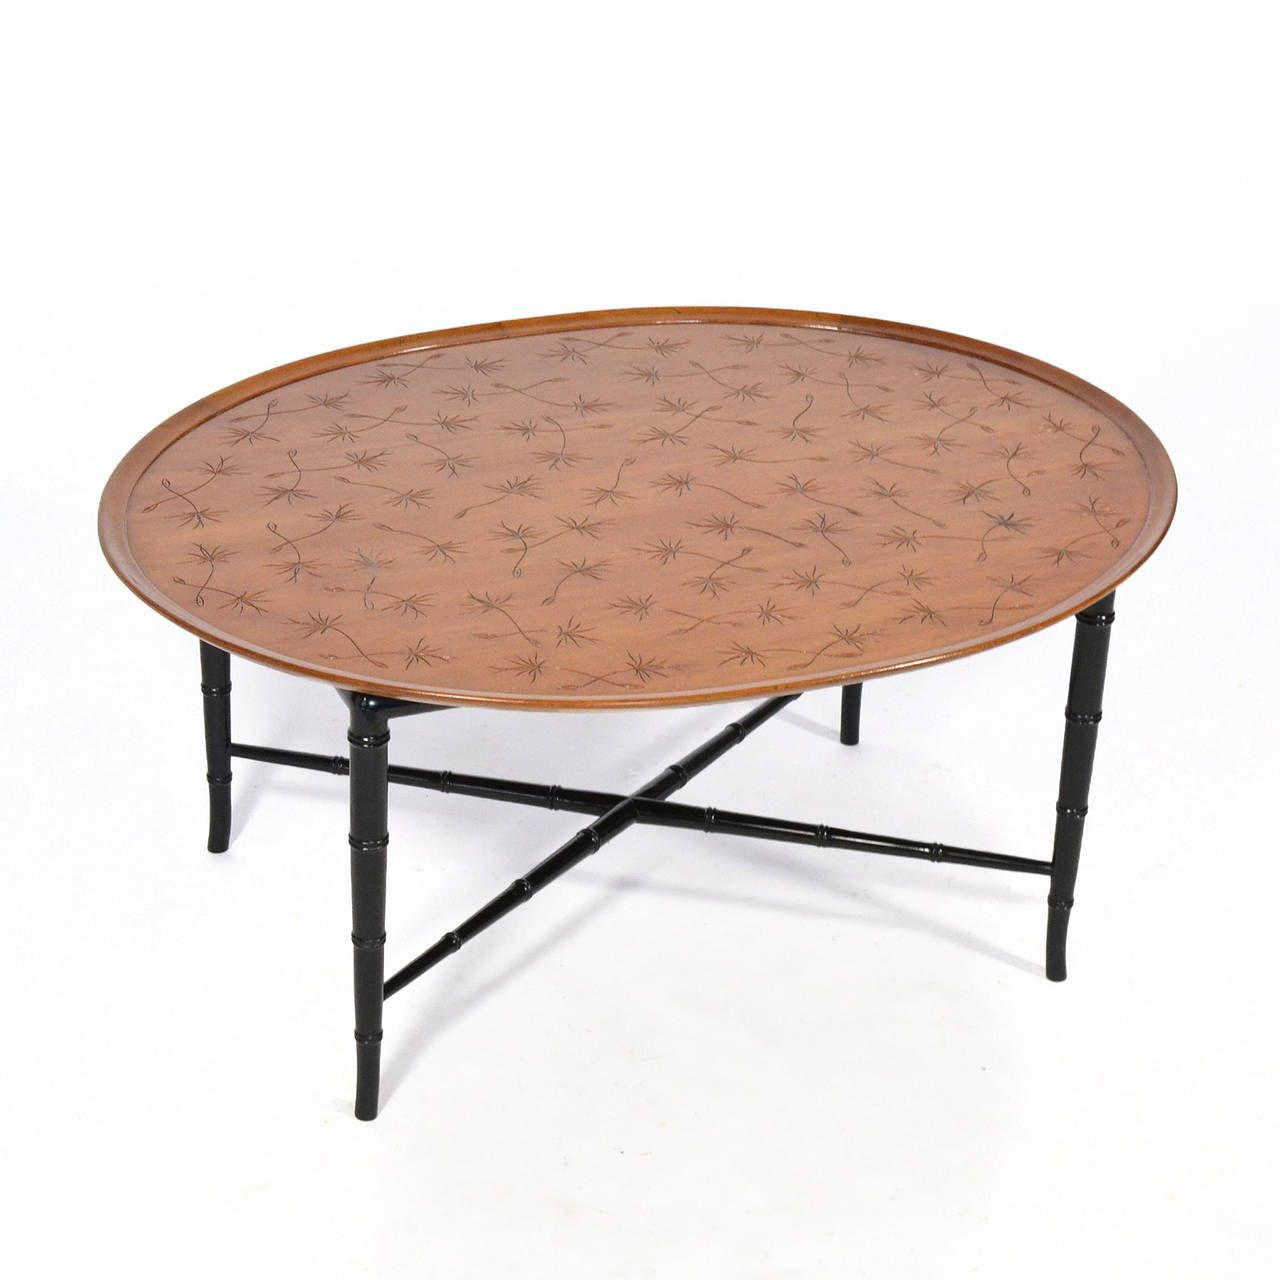 Kittinger Coffee Table with Incised Top and Faux Bamboo Legs | From a unique collection of antique and modern coffee and cocktail tables at https://www.1stdibs.com/furniture/tables/coffee-tables-cocktail-tables/